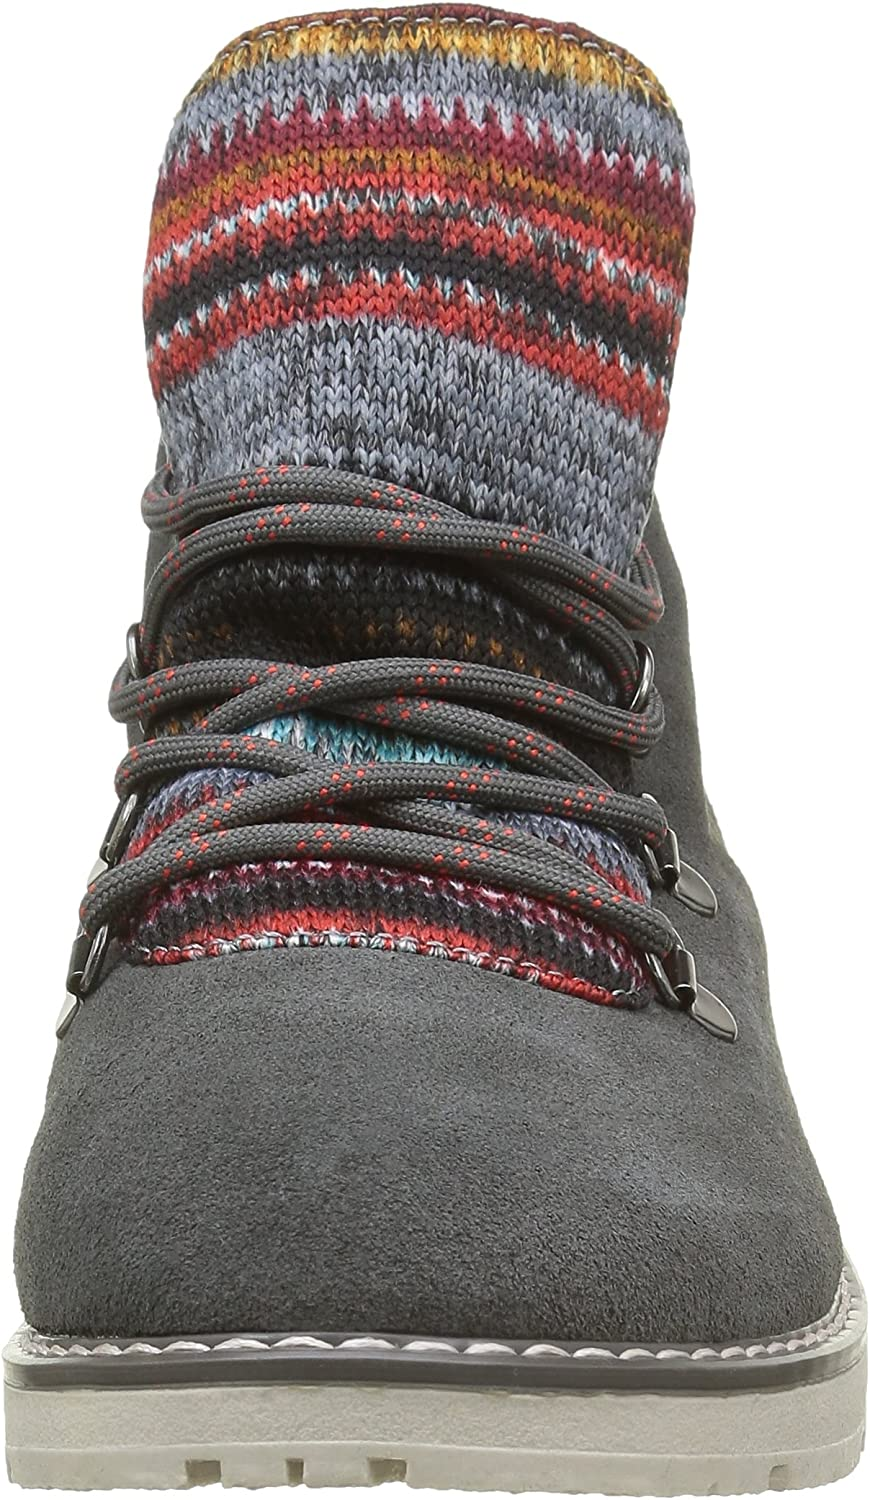 Skechers BOBS Womens Bobs Alpine-SMores Ankle Bootie